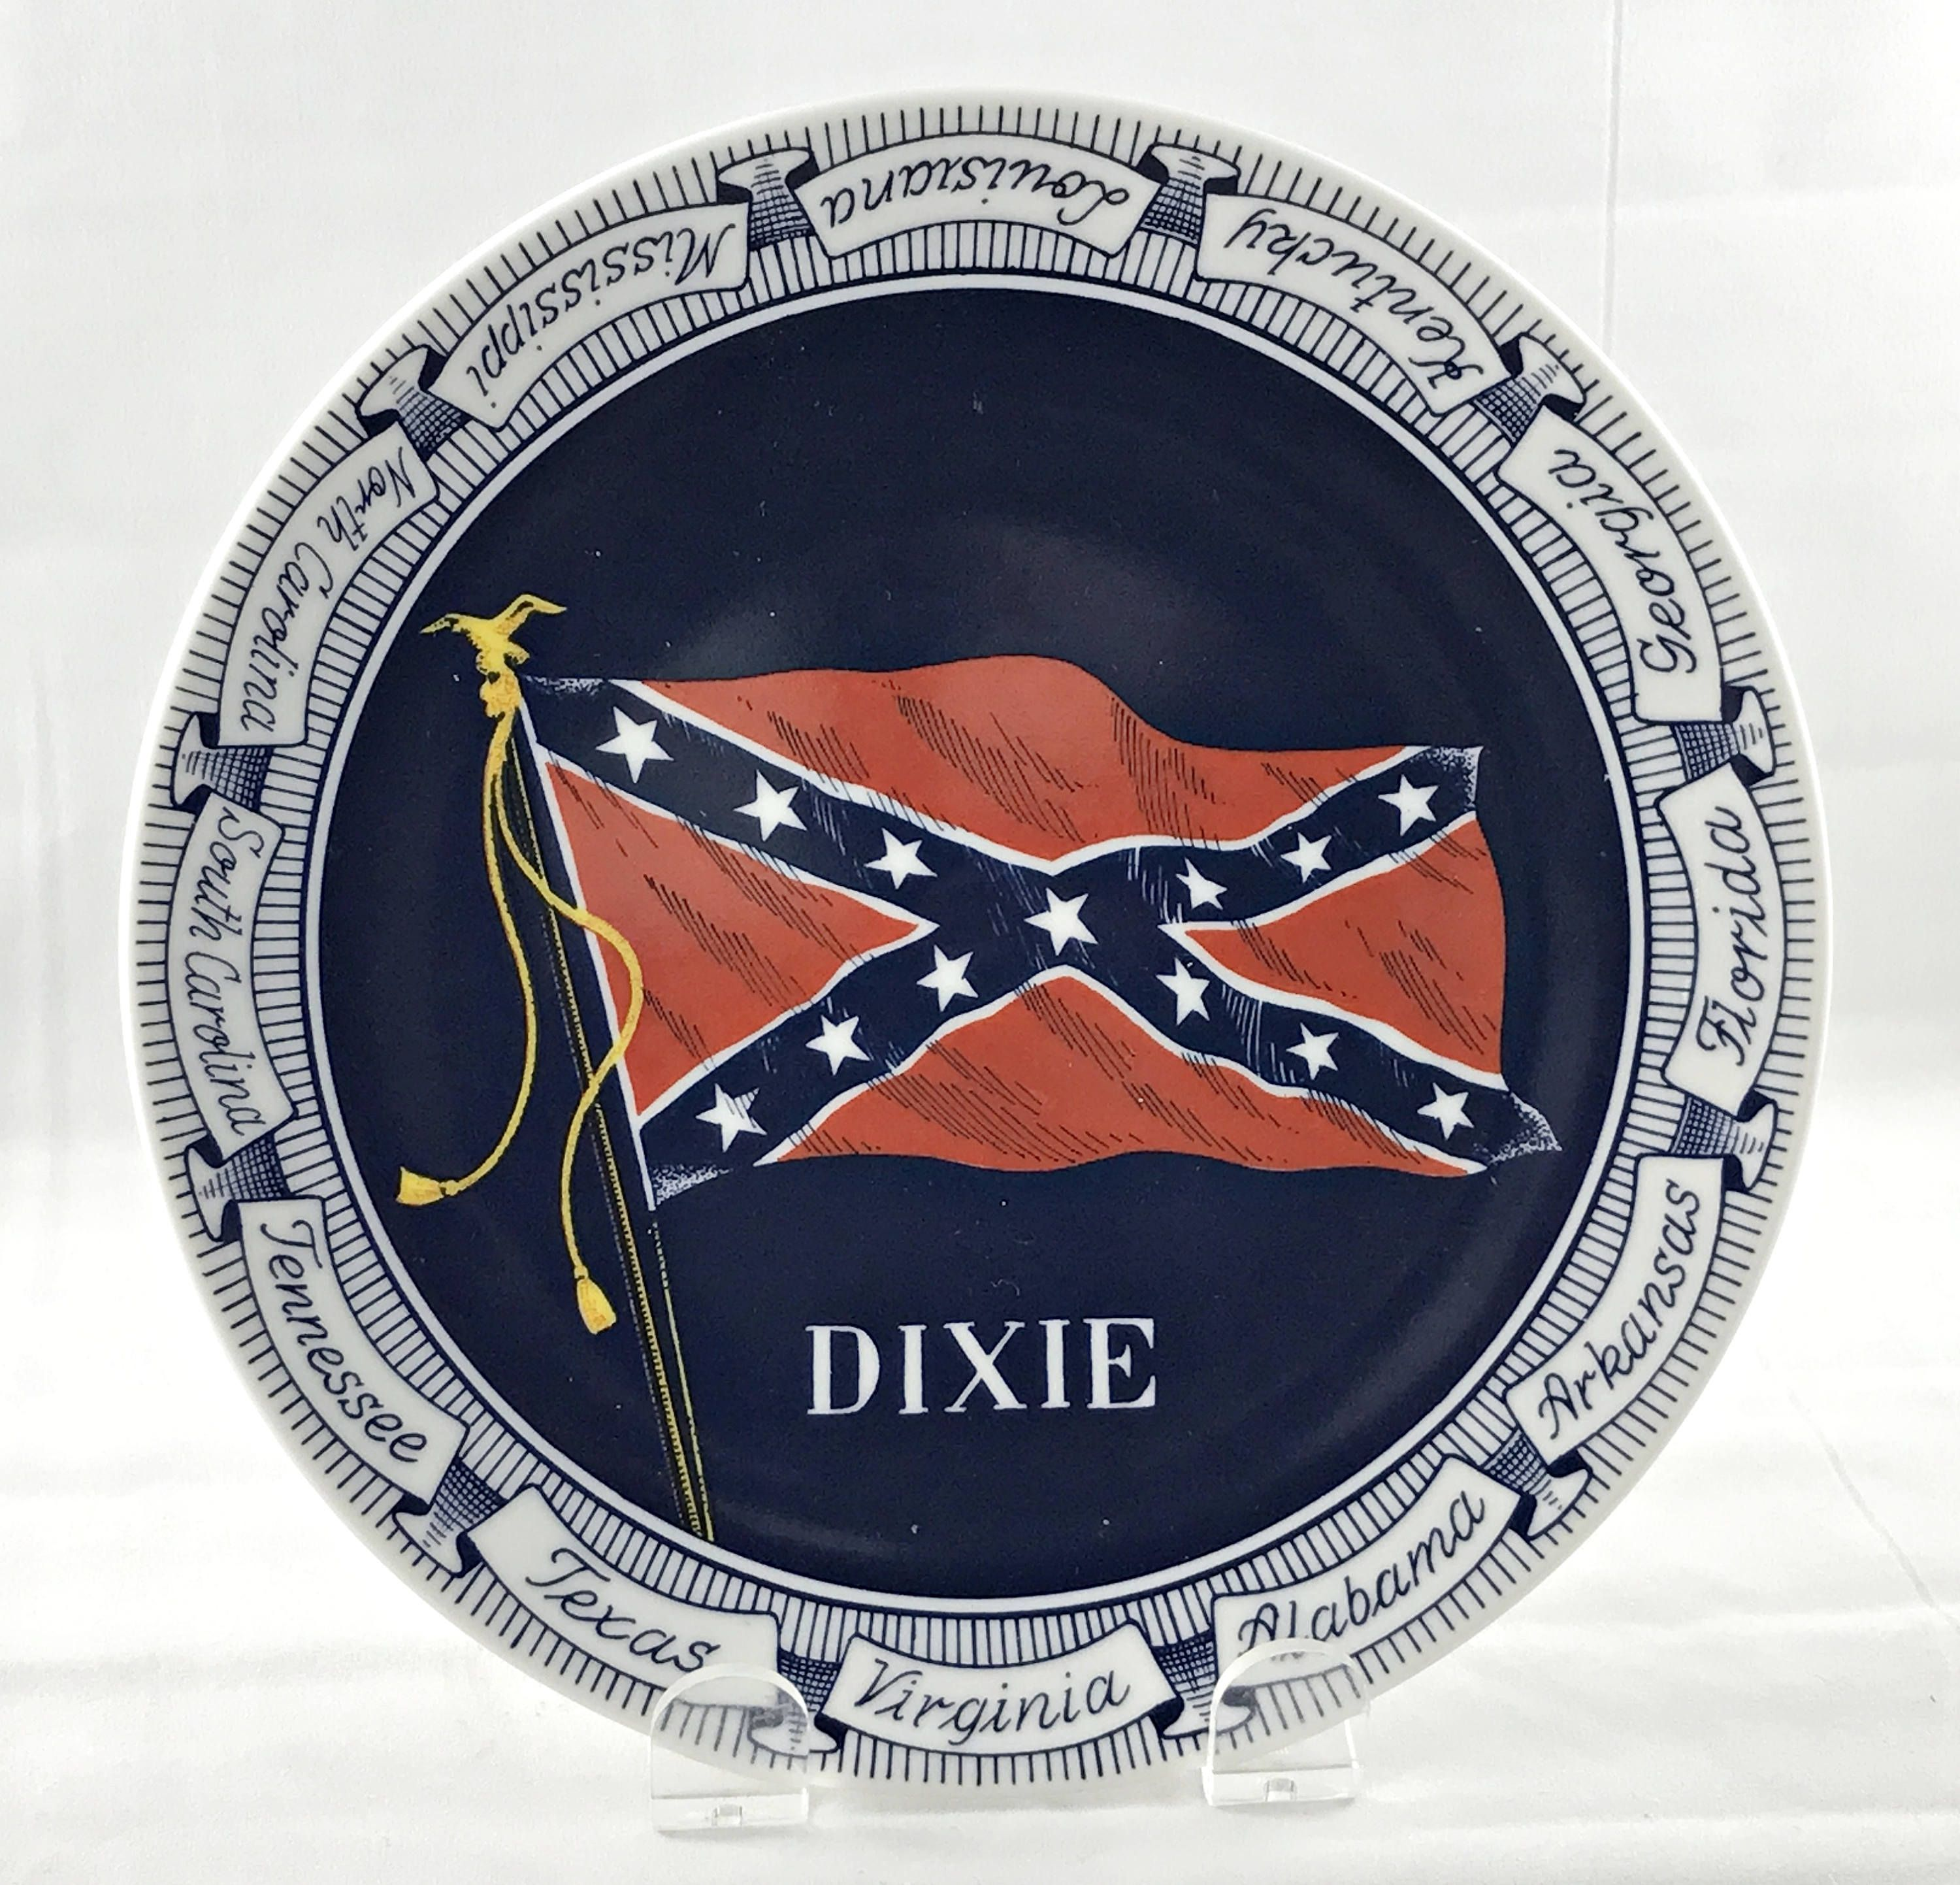 Vintage Confederate States Flag Dixie Plate Civil War Commemorative Red White Blue Made In Denmark By Anniesoldstuff On Ets War Flag Vintage Pottery Blue China